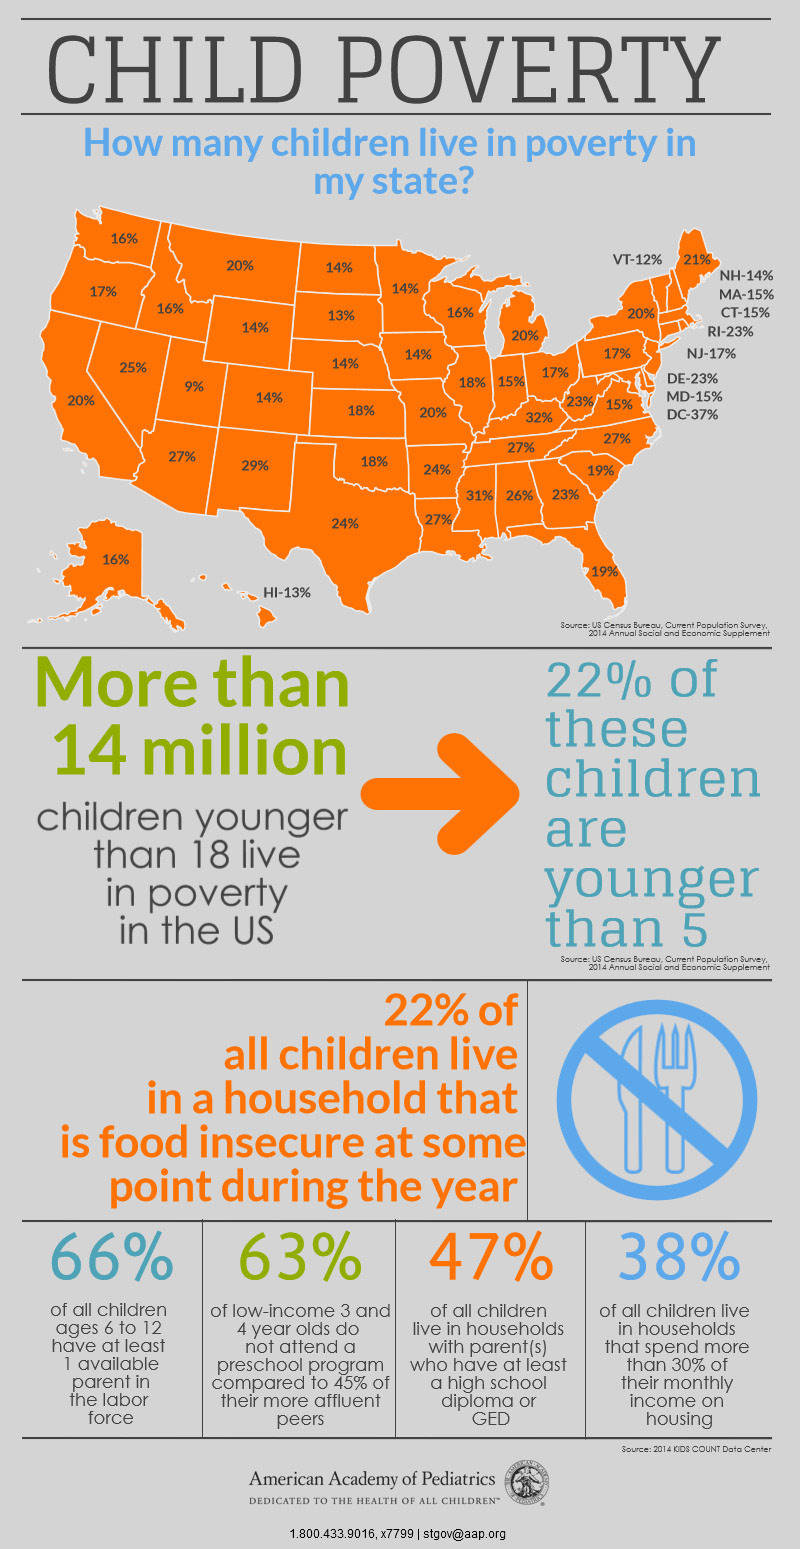 child poverty The us census bureau released its annual household income report, income, poverty and health insurance coverage in the united states: 2011 on september 12the report presents data on income, poverty and health insurance coverage in the united states research shows children in families receiving .